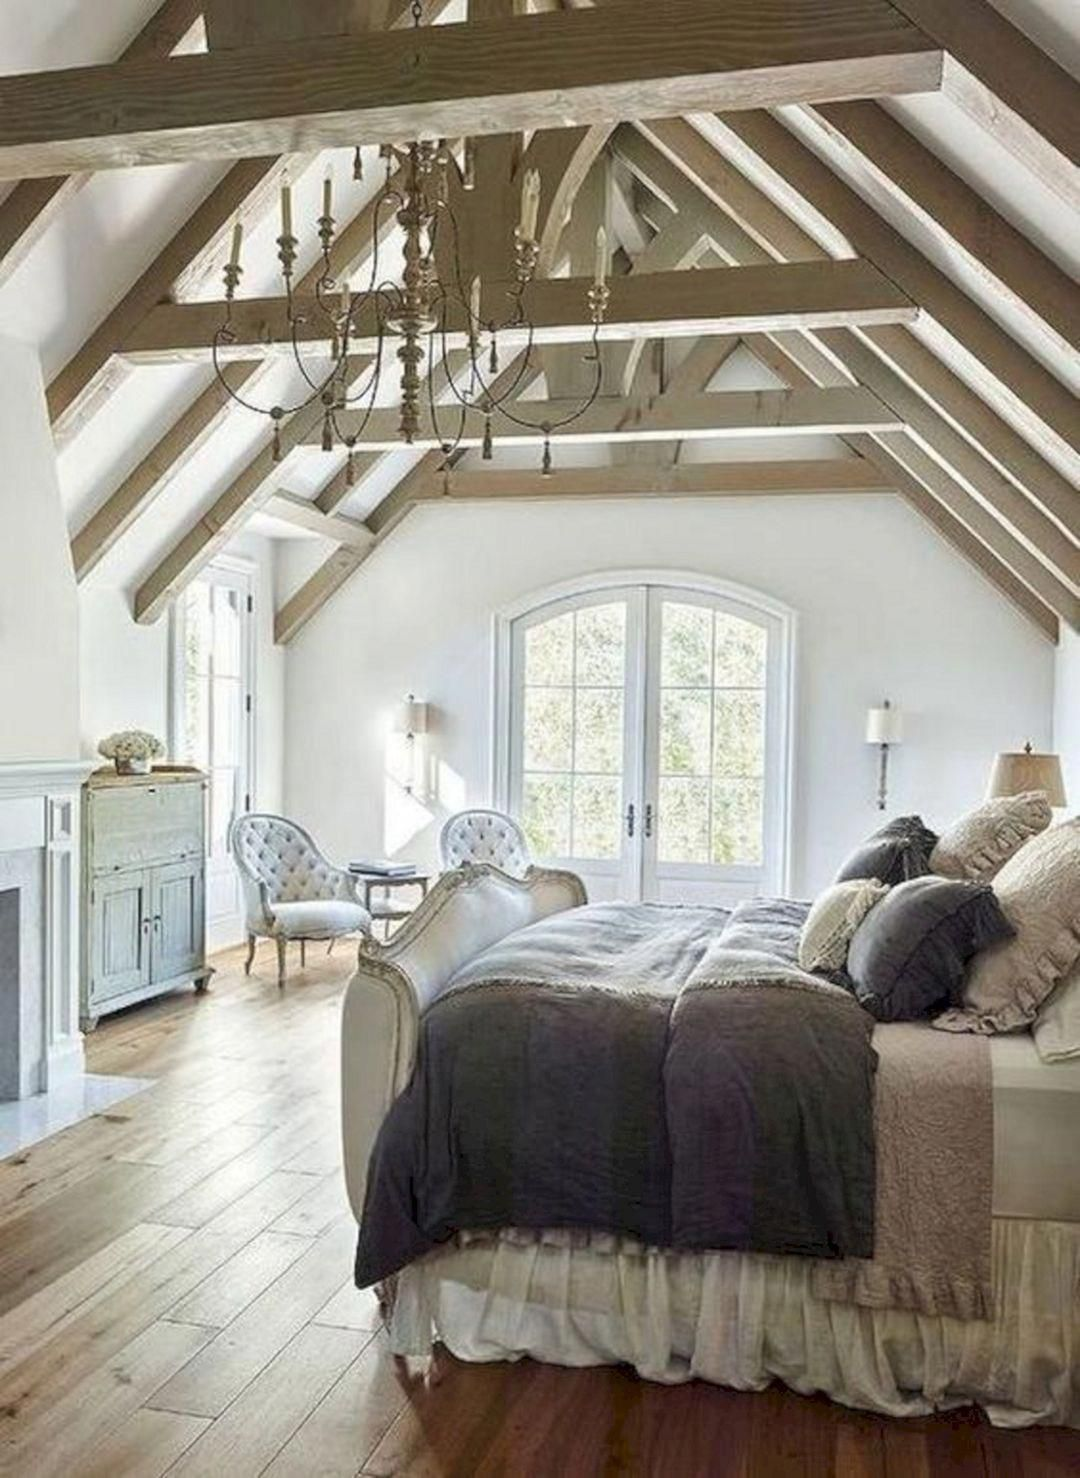 Europehomedecor French Country Bedrooms French Country Decorating Bedroom Country Bedroom Design